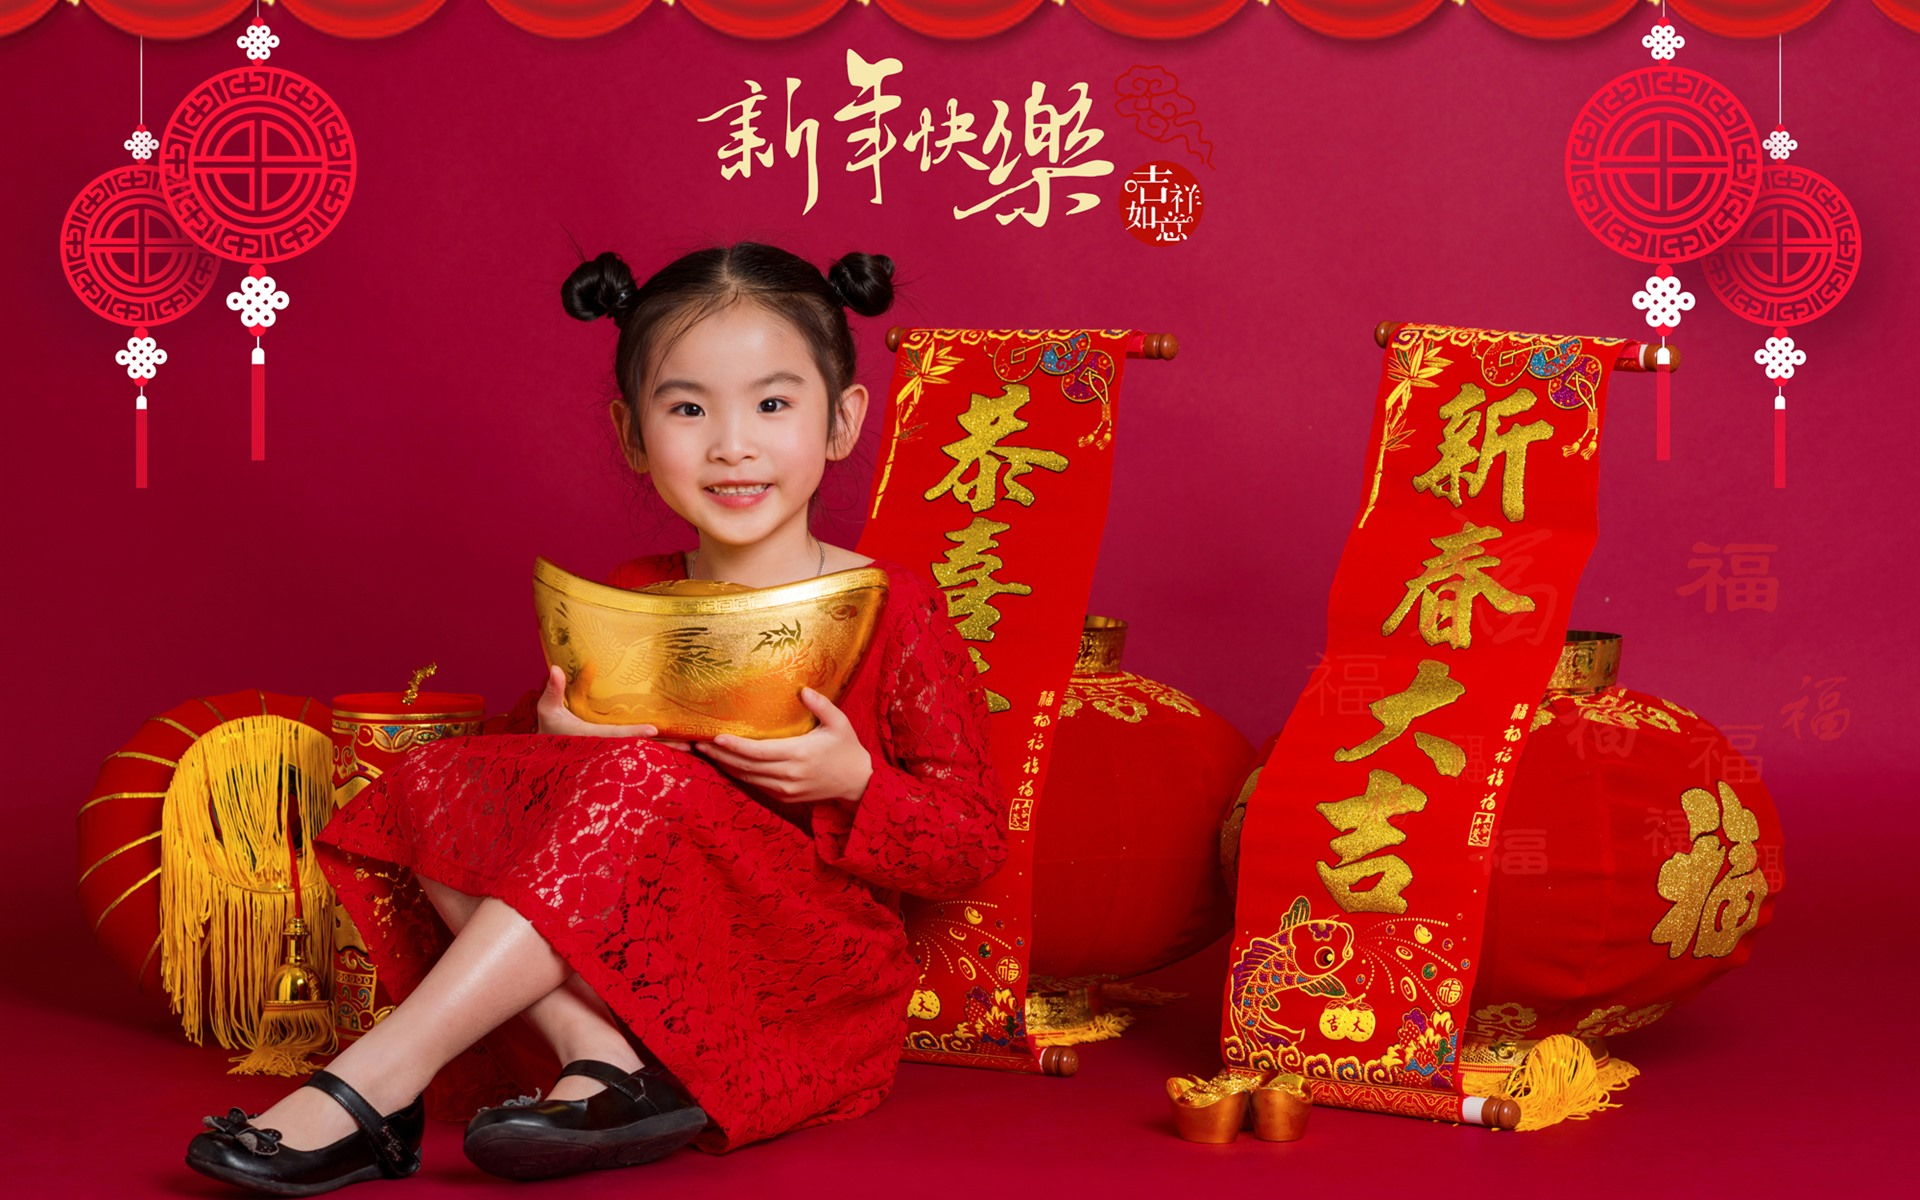 Wallpaper Happy Chinese New Year Cute Little Girl Red Style 1920x1200 Hd Picture Image